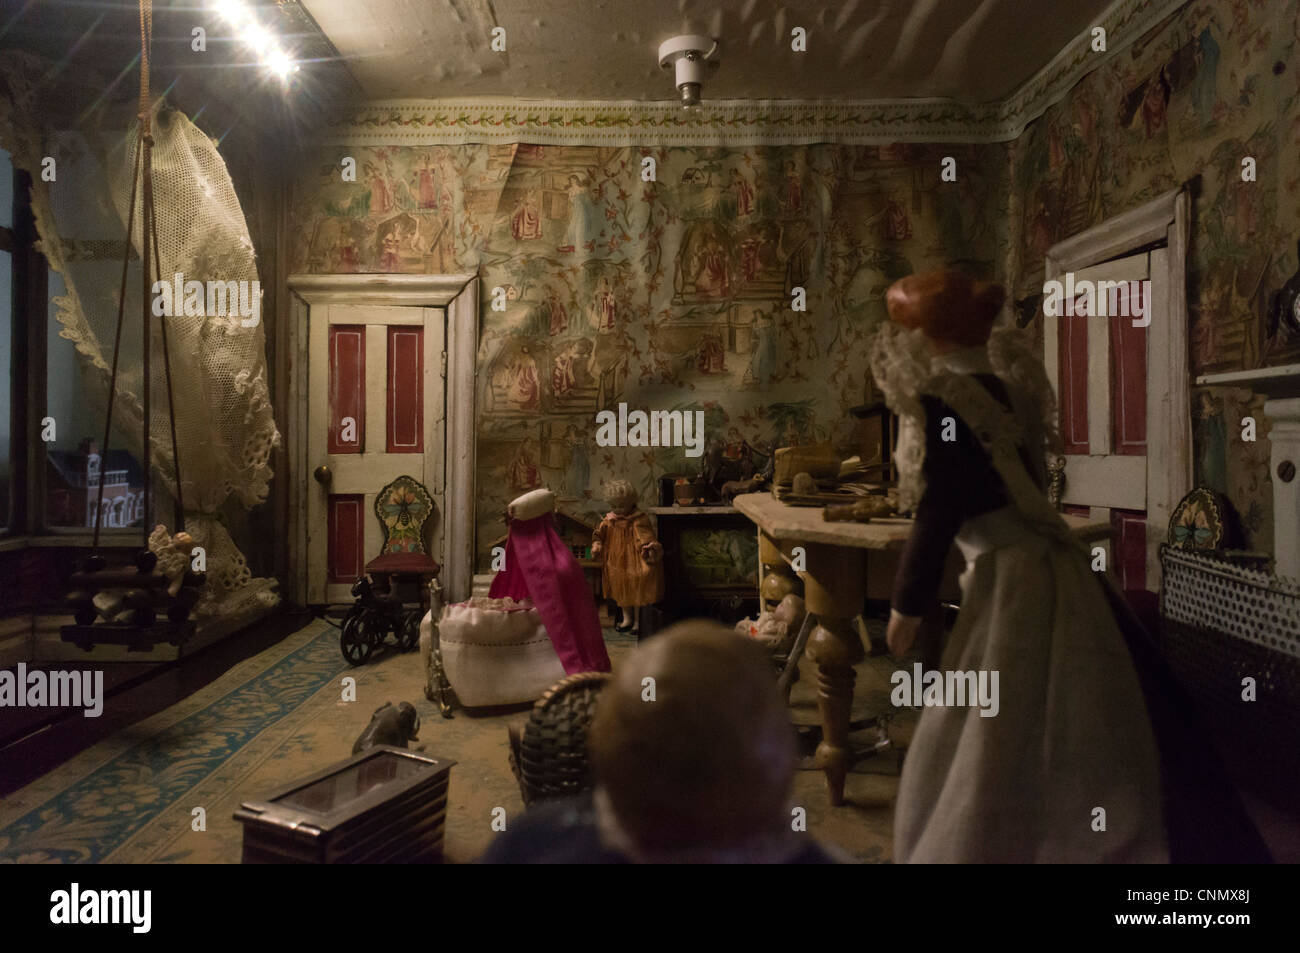 Victorian Style Old Dolls House Interior Stock Photo Royalty - Dolls house interior